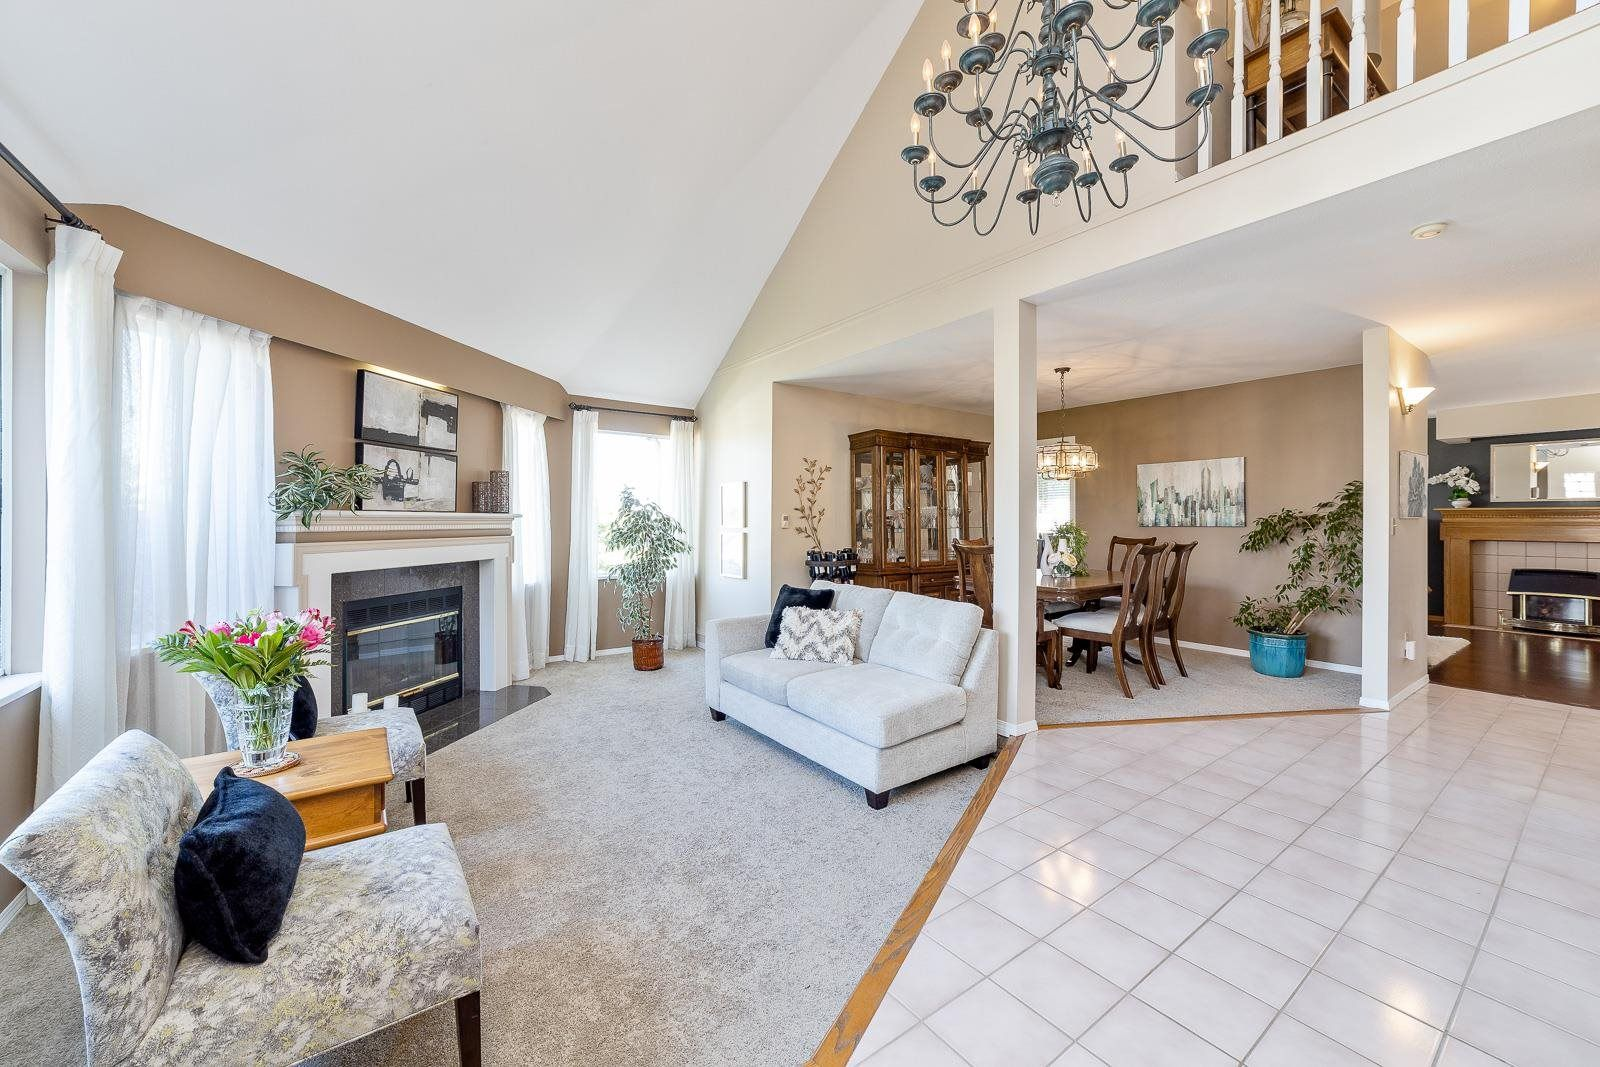 """Main Photo: 1275 GATEWAY Place in Port Coquitlam: Citadel PQ House for sale in """"CITADEL"""" : MLS®# R2594473"""